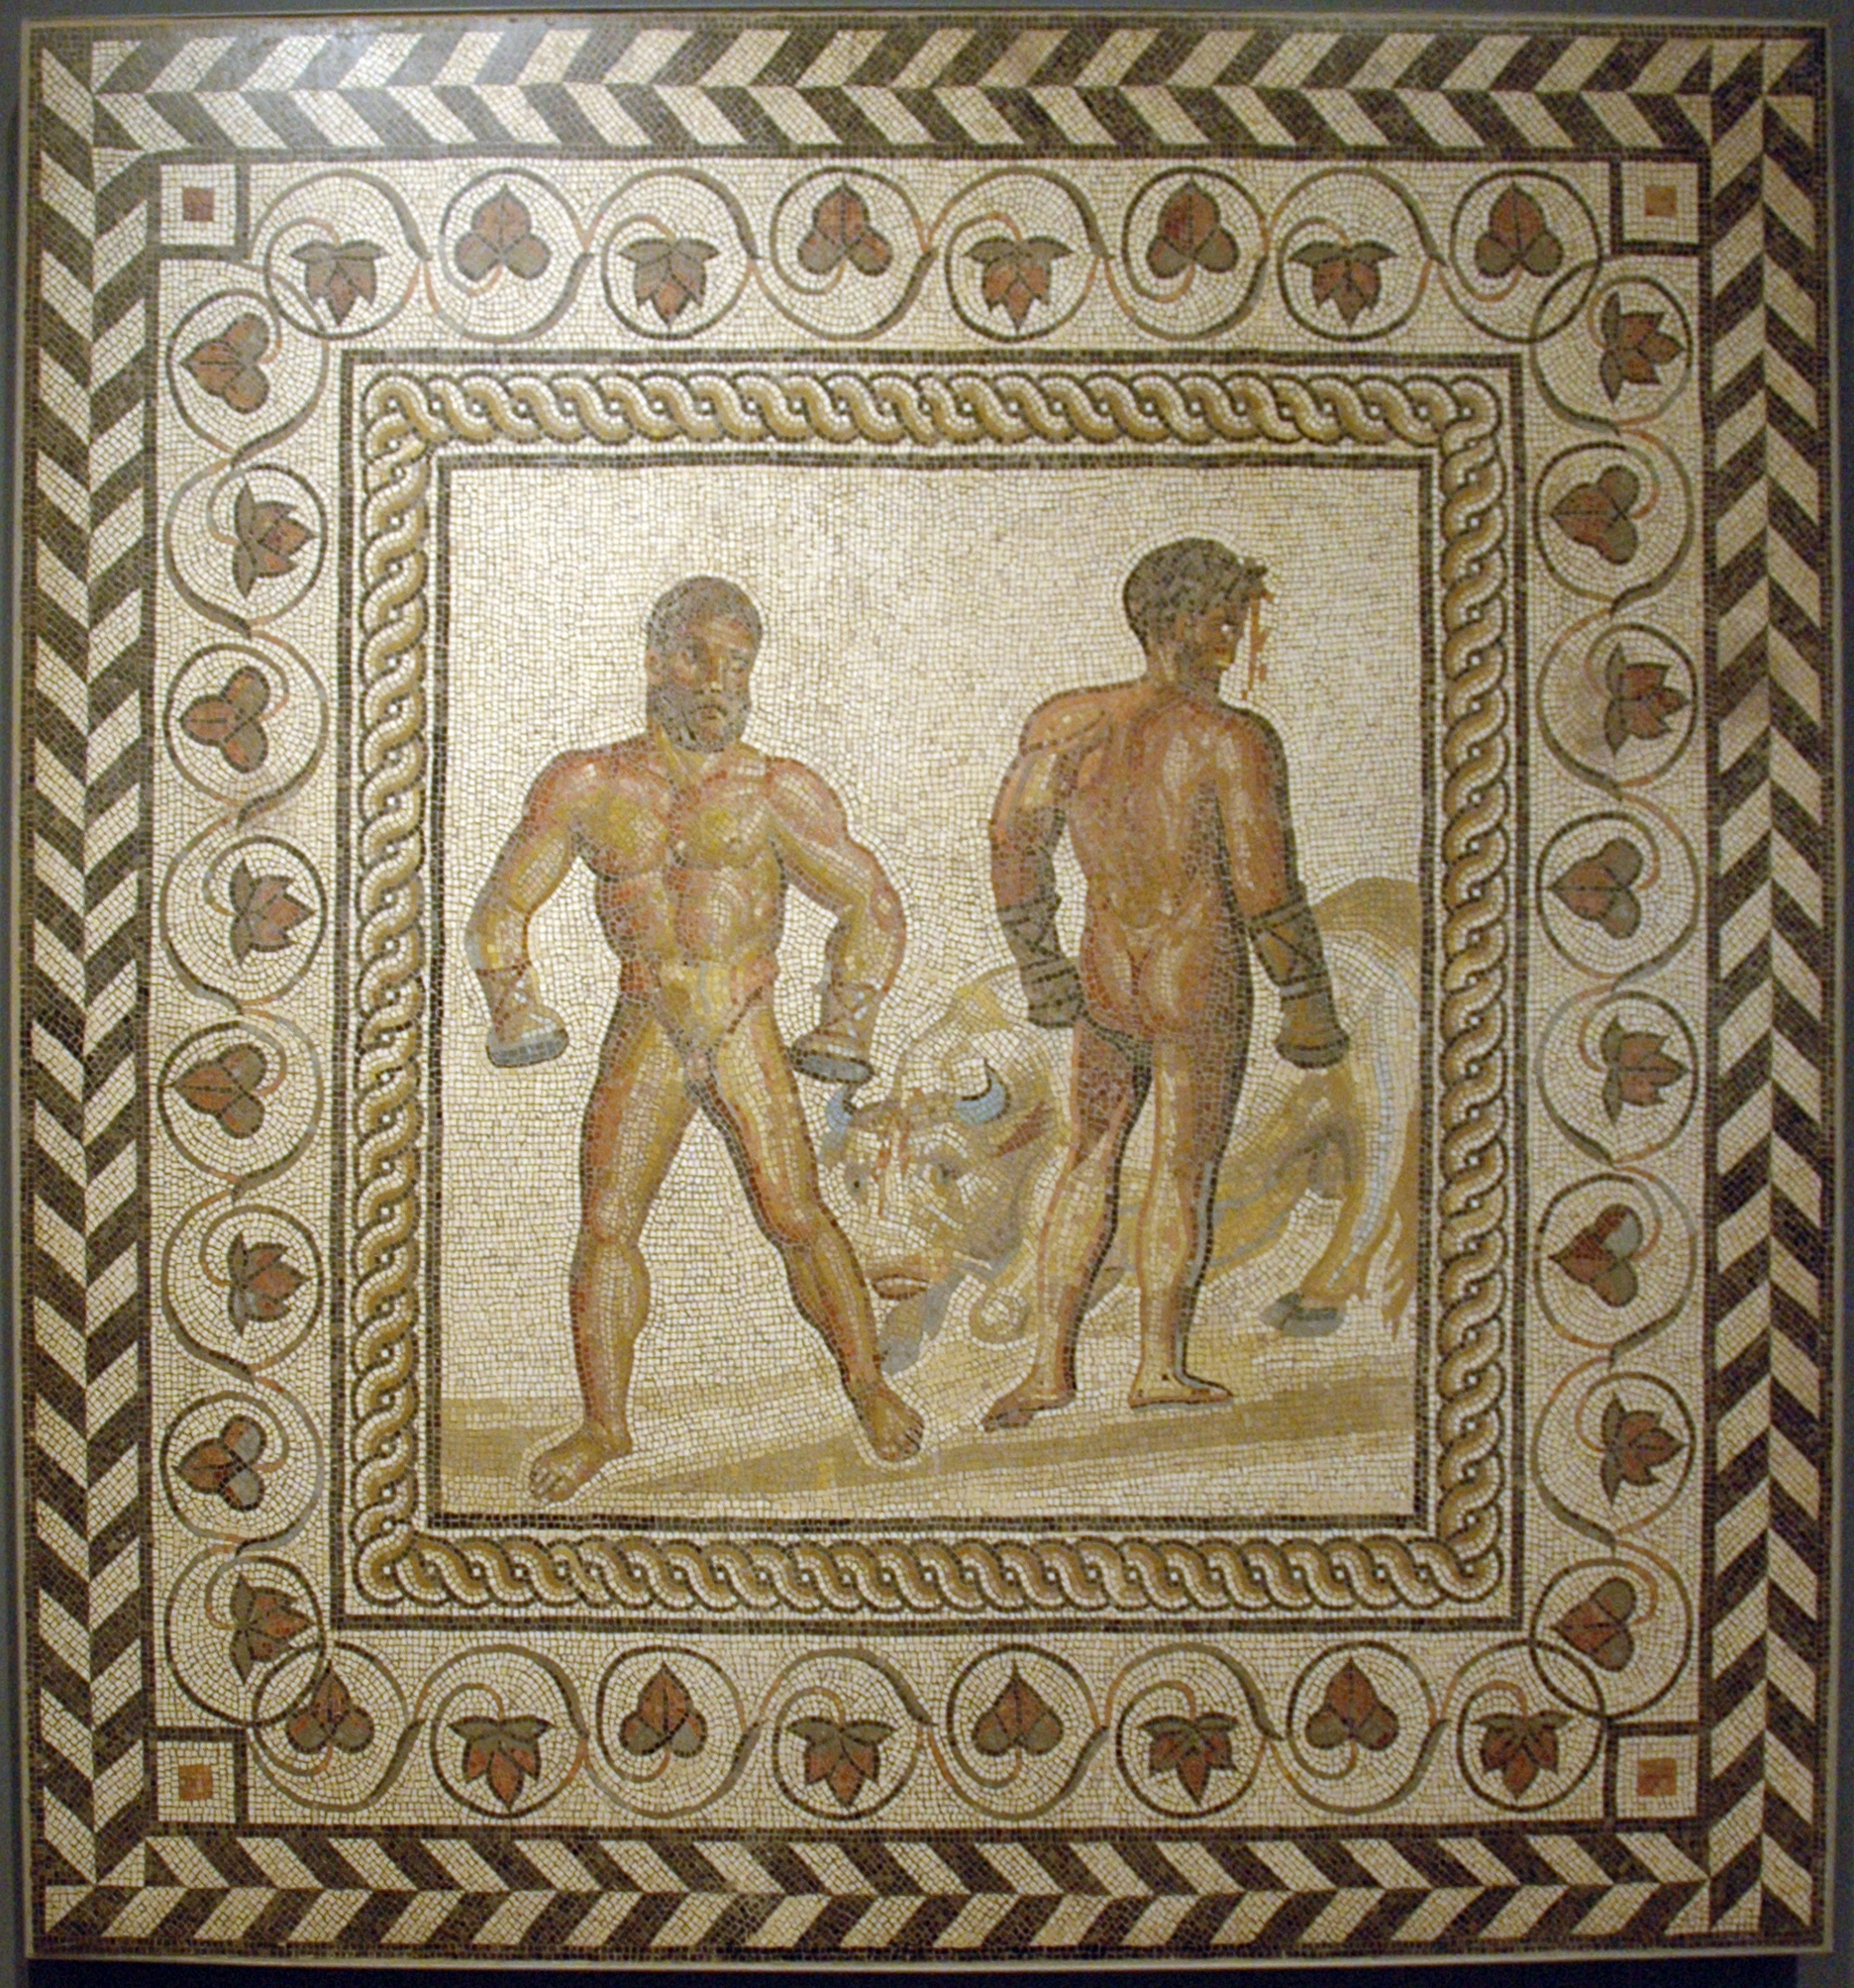 Historical Art and  Symbolism inspiration in CONAN - Page 11 Mosaic_boxers_Getty_Villa_71.AH.106